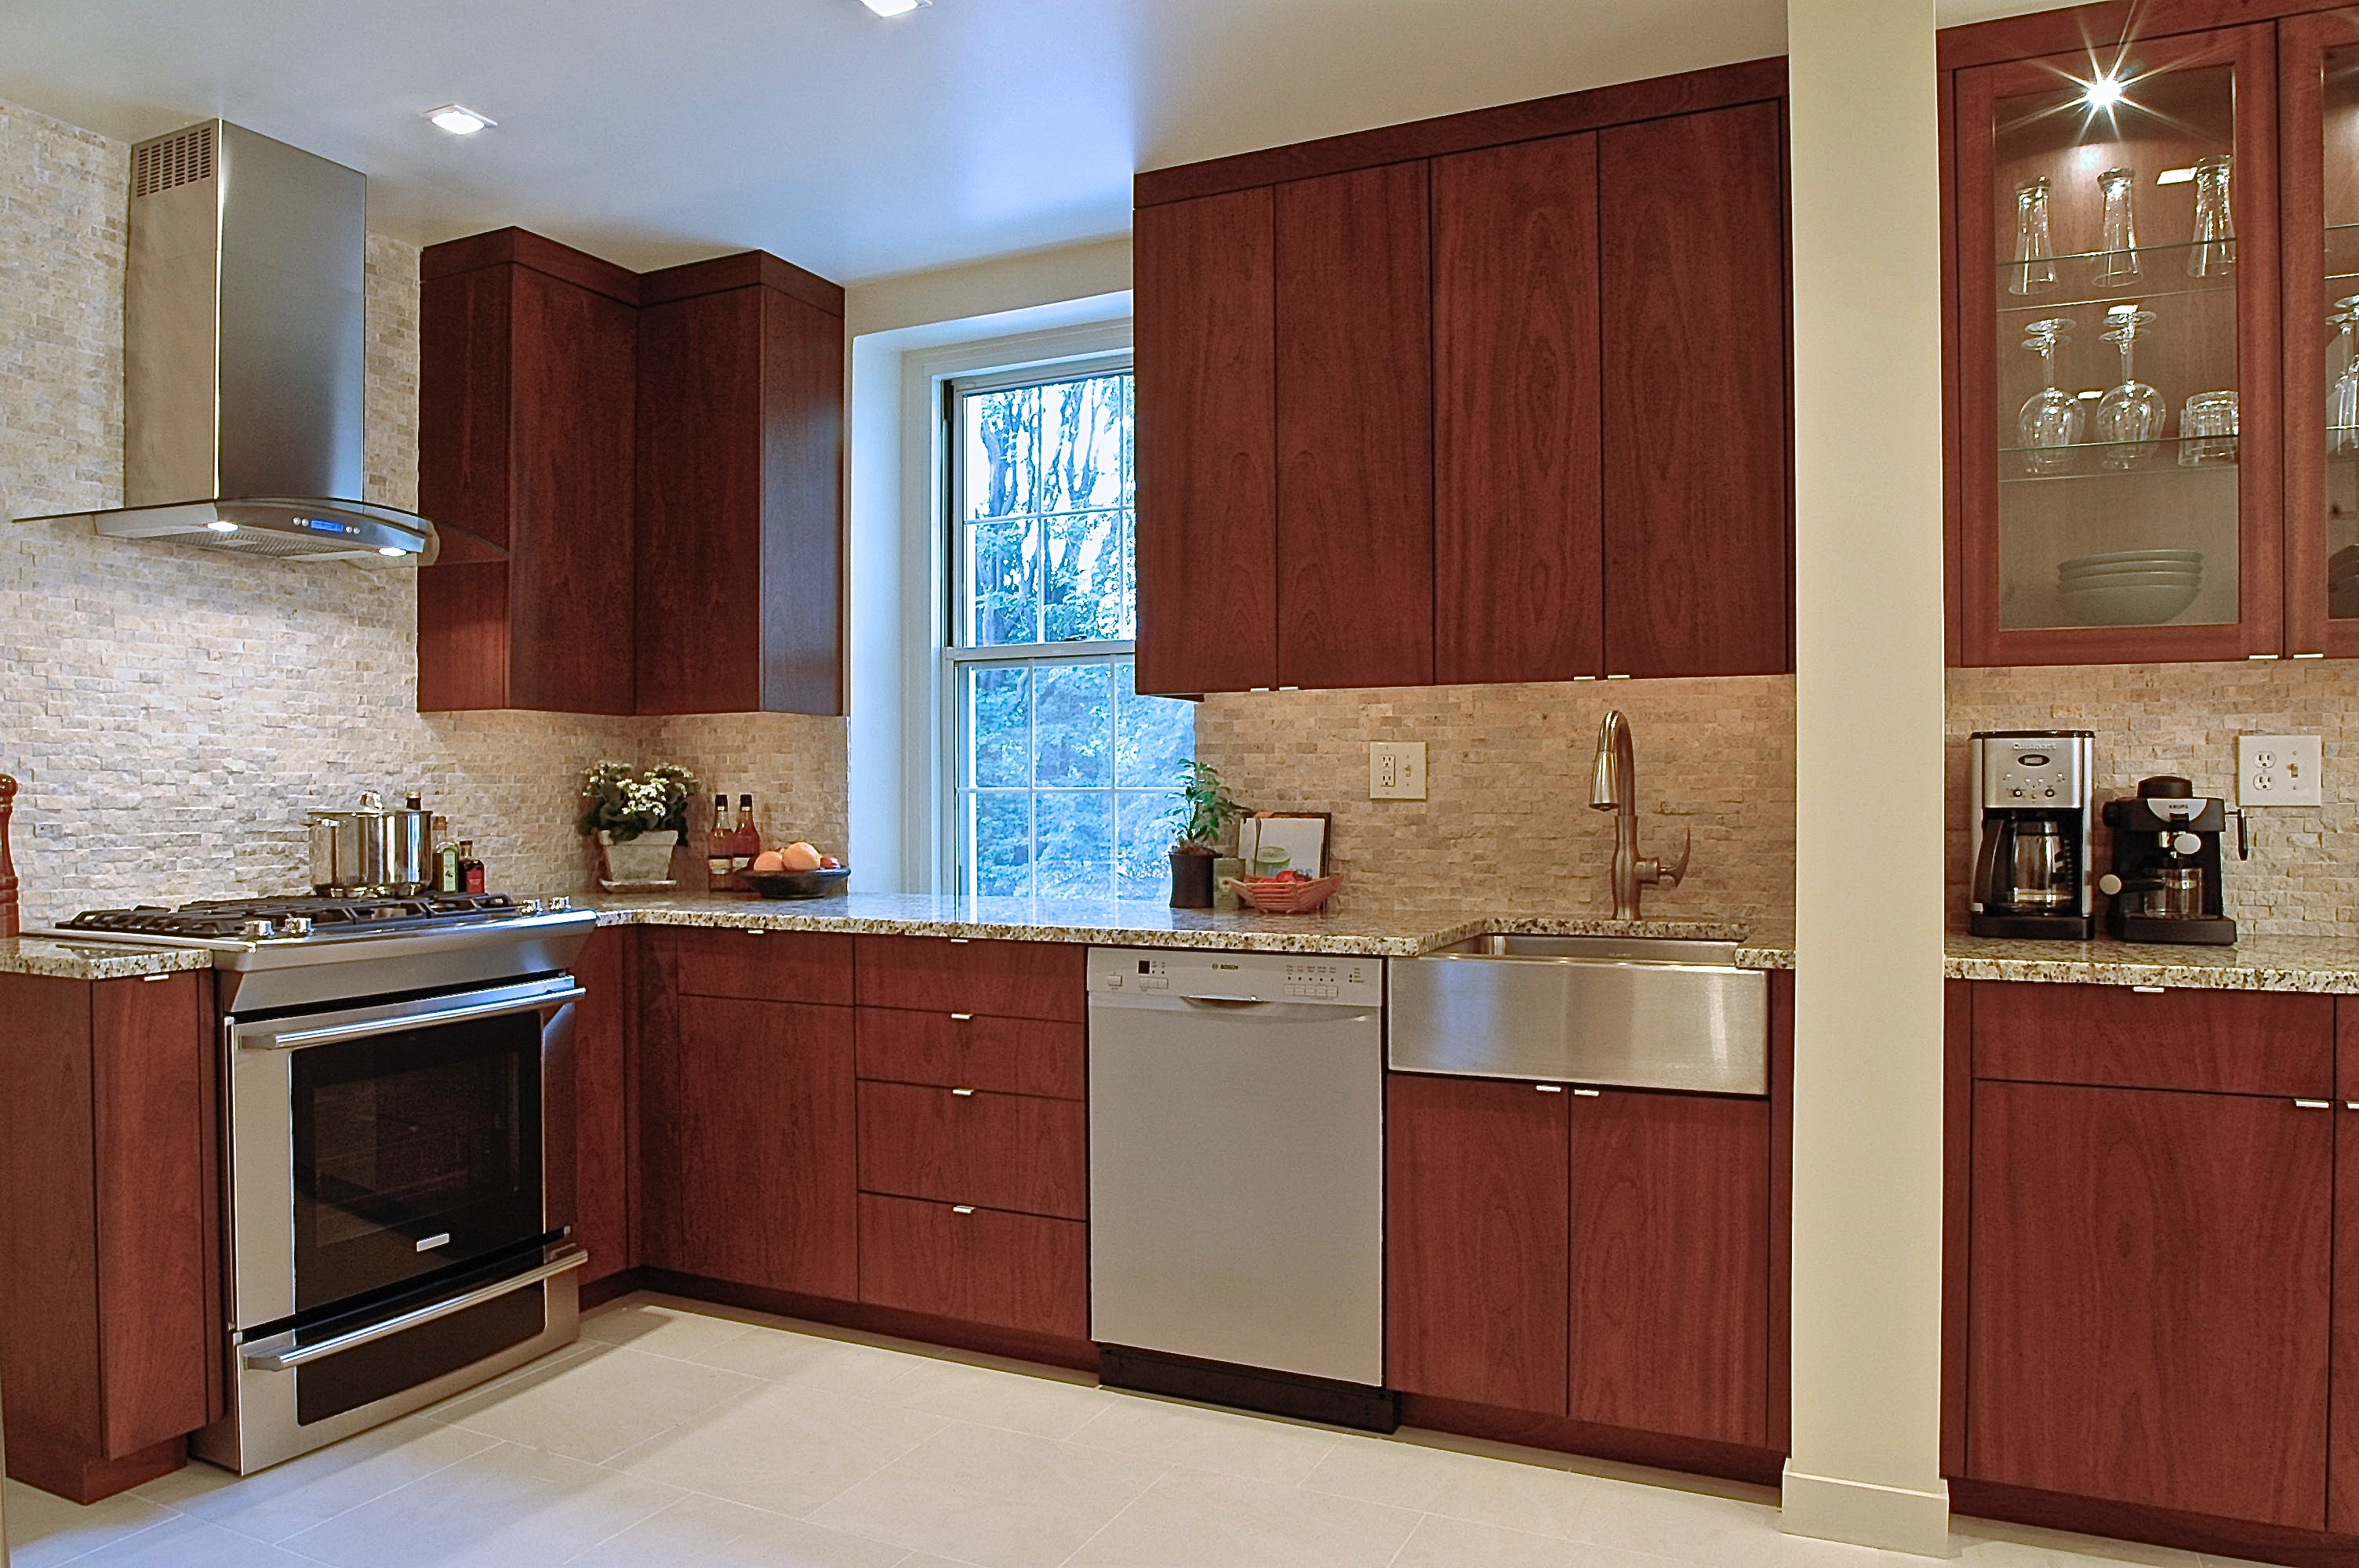 a guide to choosing kitchen cabinets - curbed